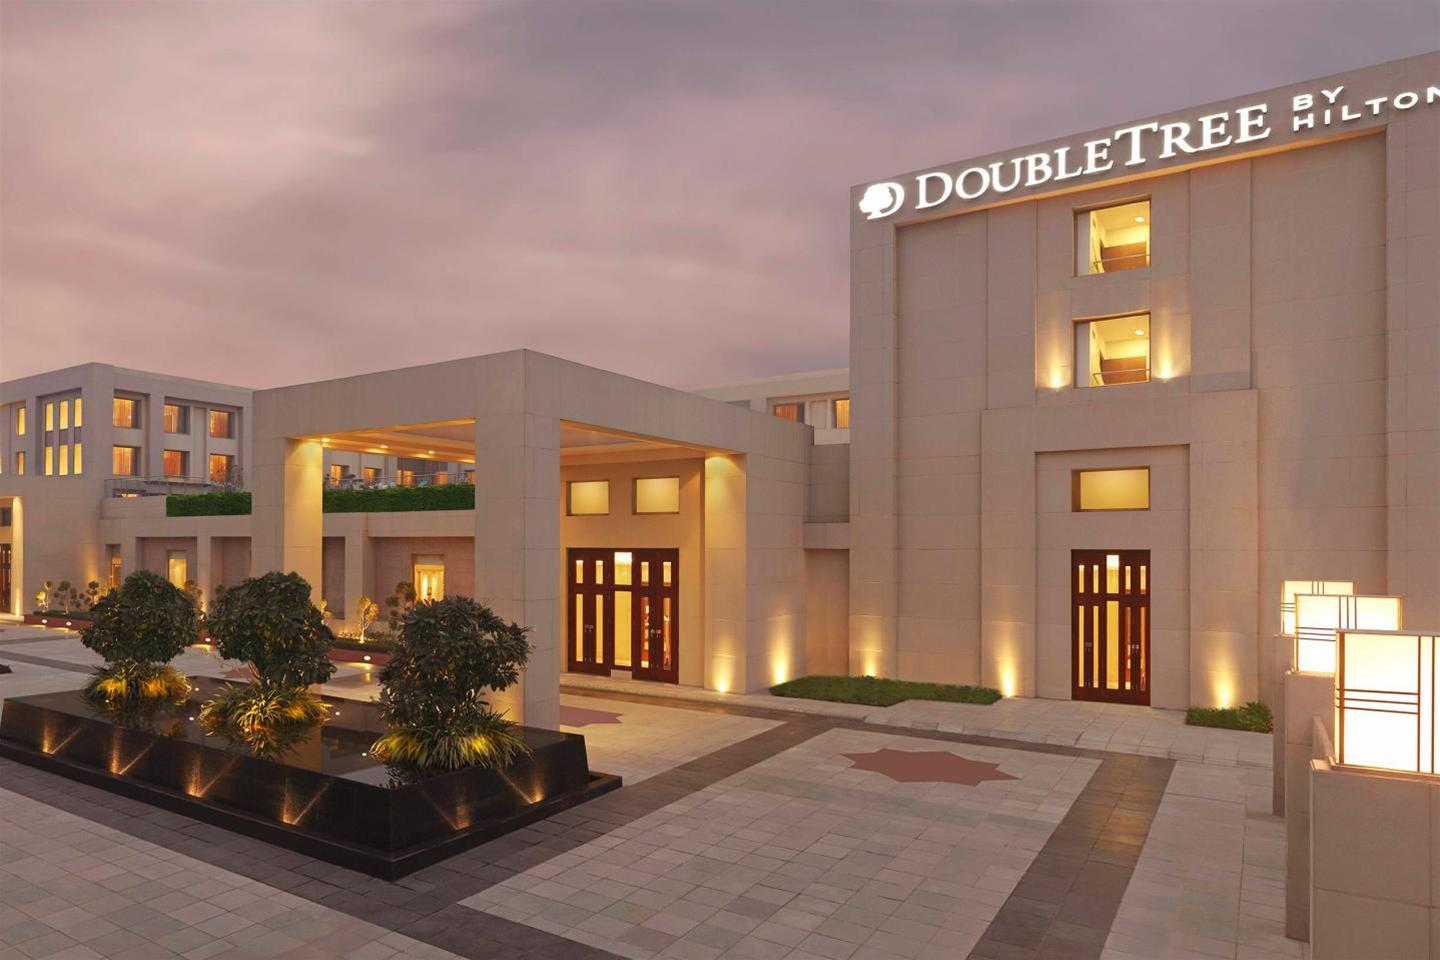 DoubleTree by Hilton Agra